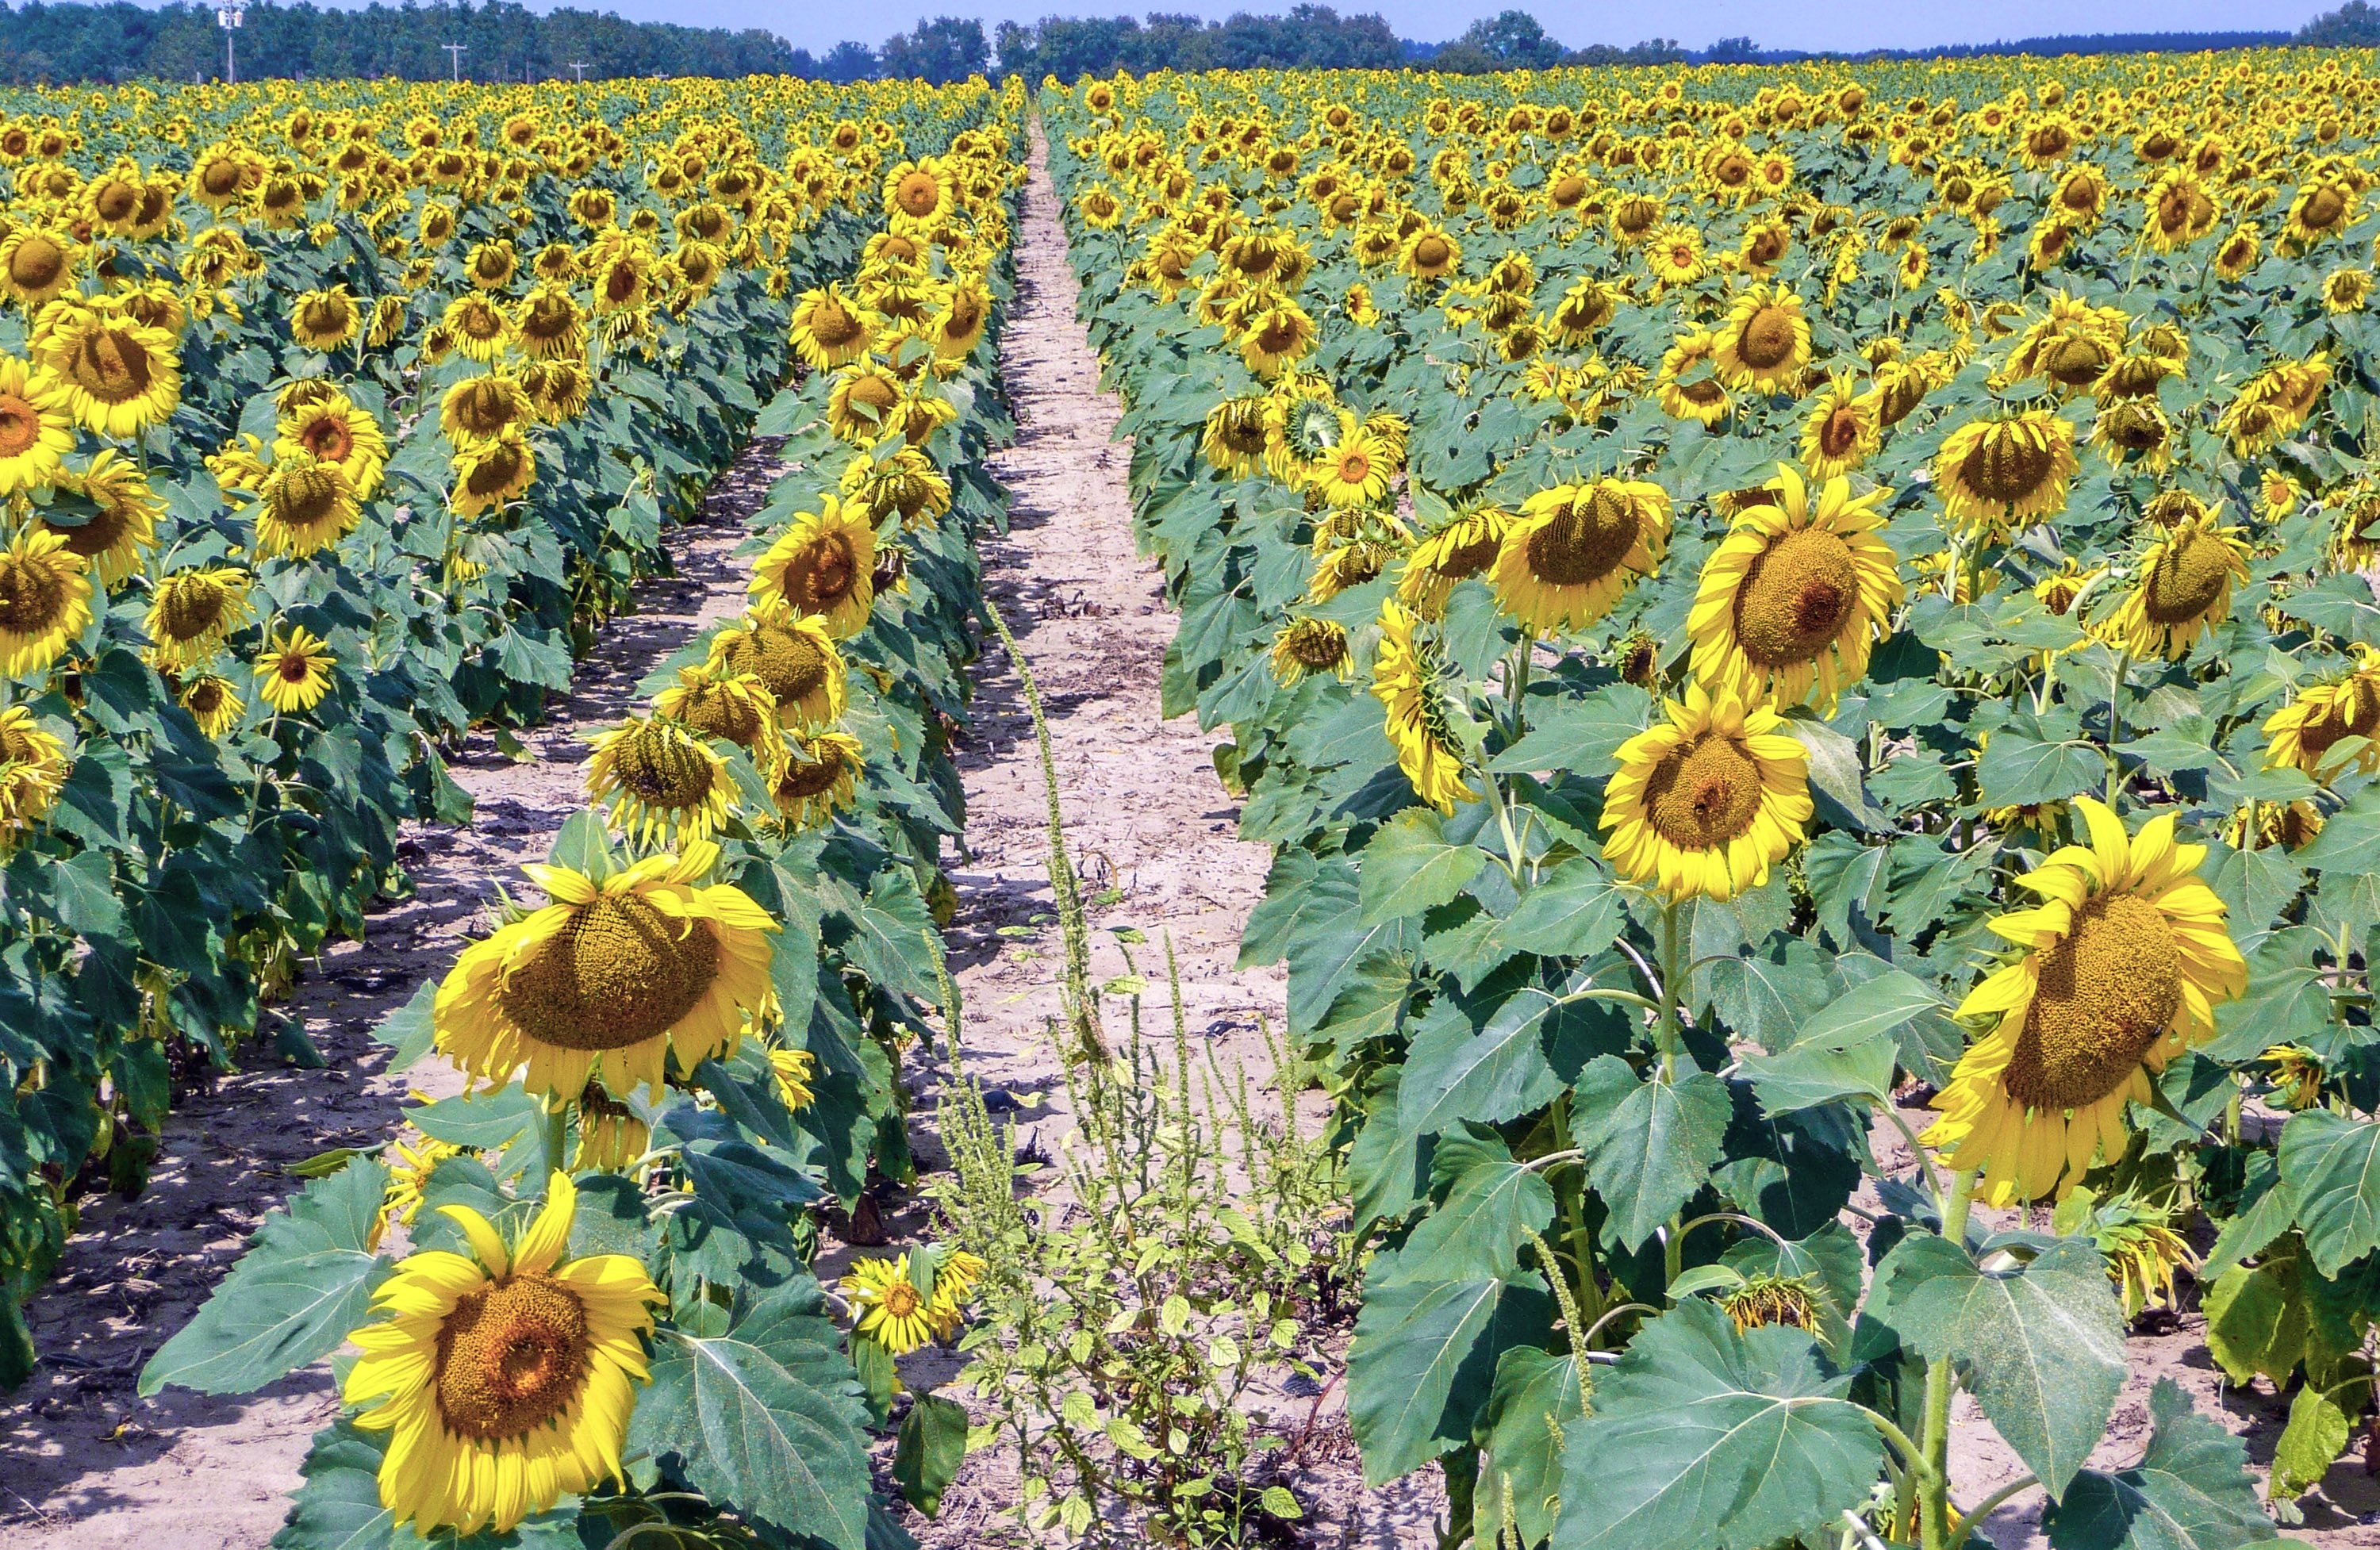 The state of Georgia is home to a number of sunflower farms.